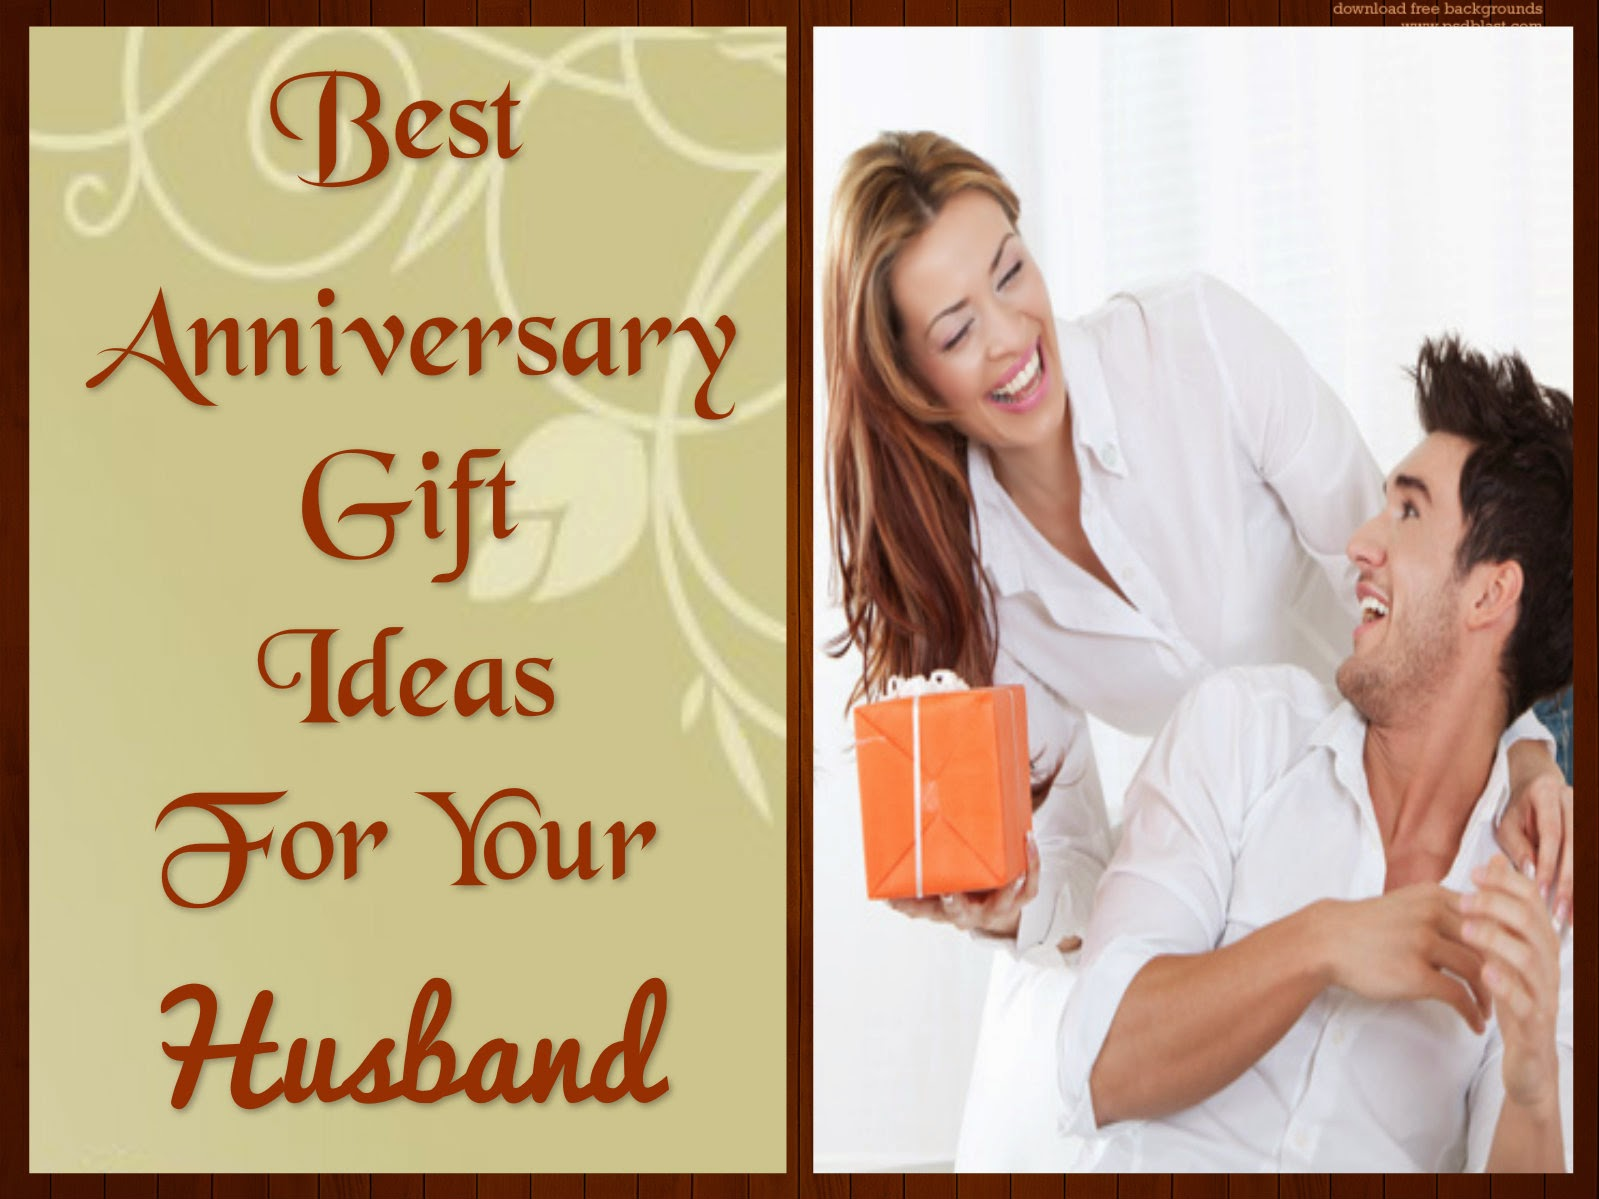 Wedding Anniversary Ideas Husband : Wedding Anniversary Gifts: Best Anniversary Gift Ideas For Your ...